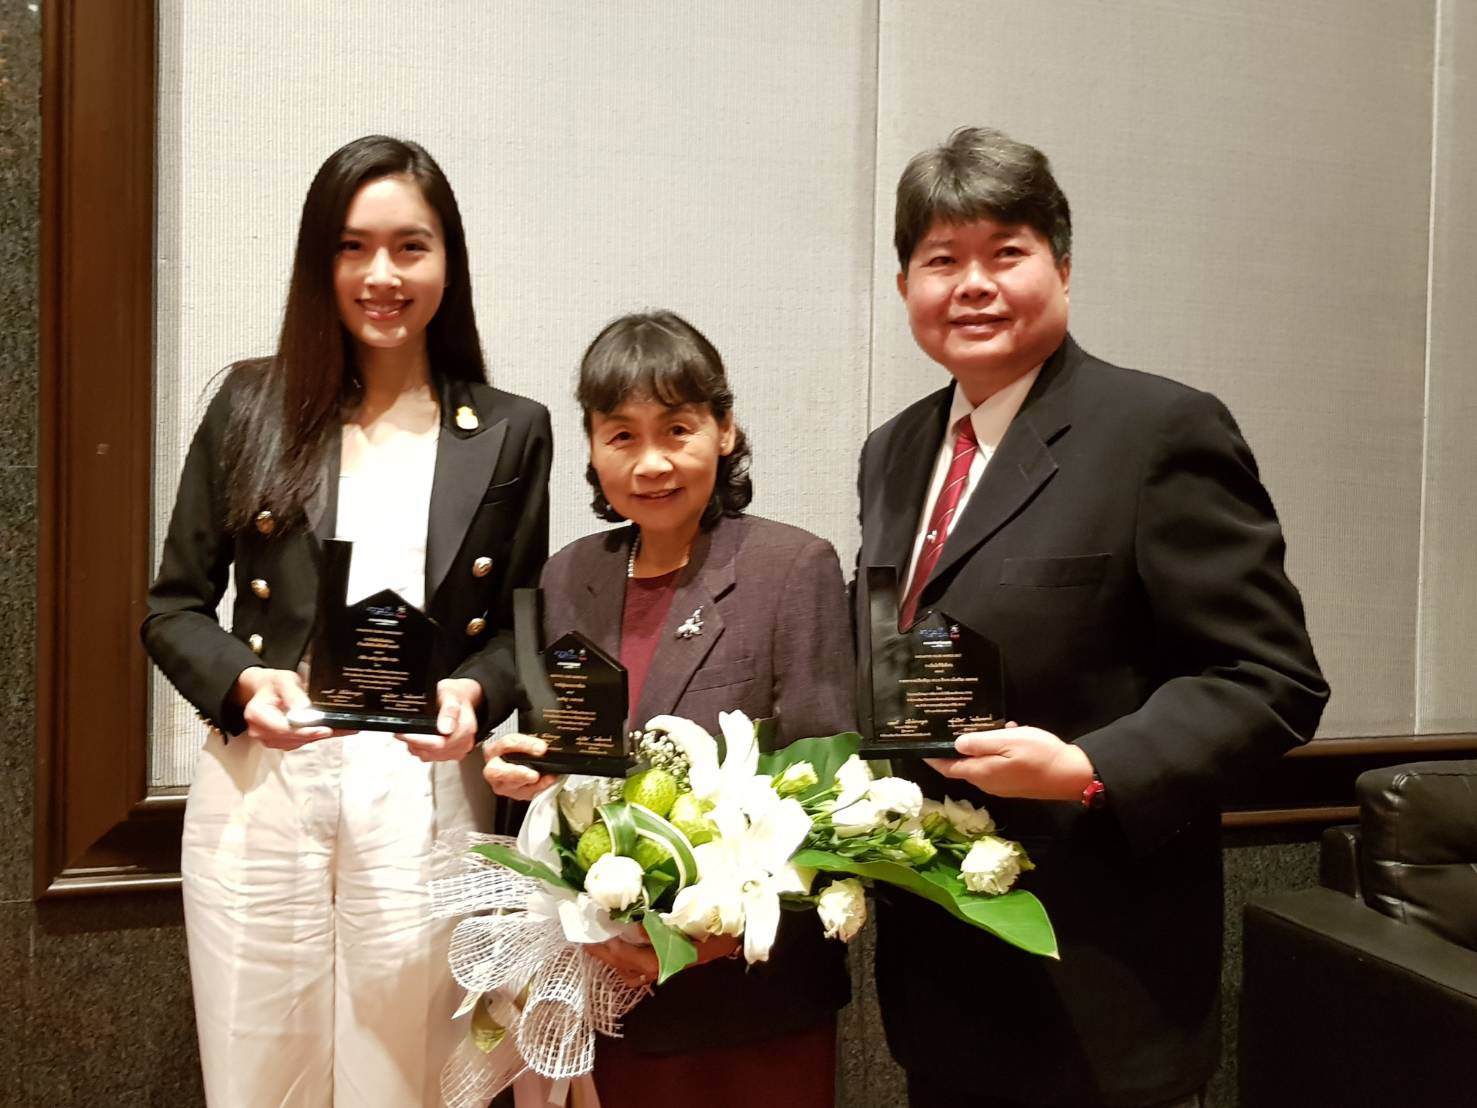 The Board Committee of Manose Health and Beauty Research Center and the research team have received the awards for the outstanding research awards team and the outstanding creative product of the year 2017 of the Thailand Research Fund (TRF) and National Science and Technology Development Agency (NSTDA)